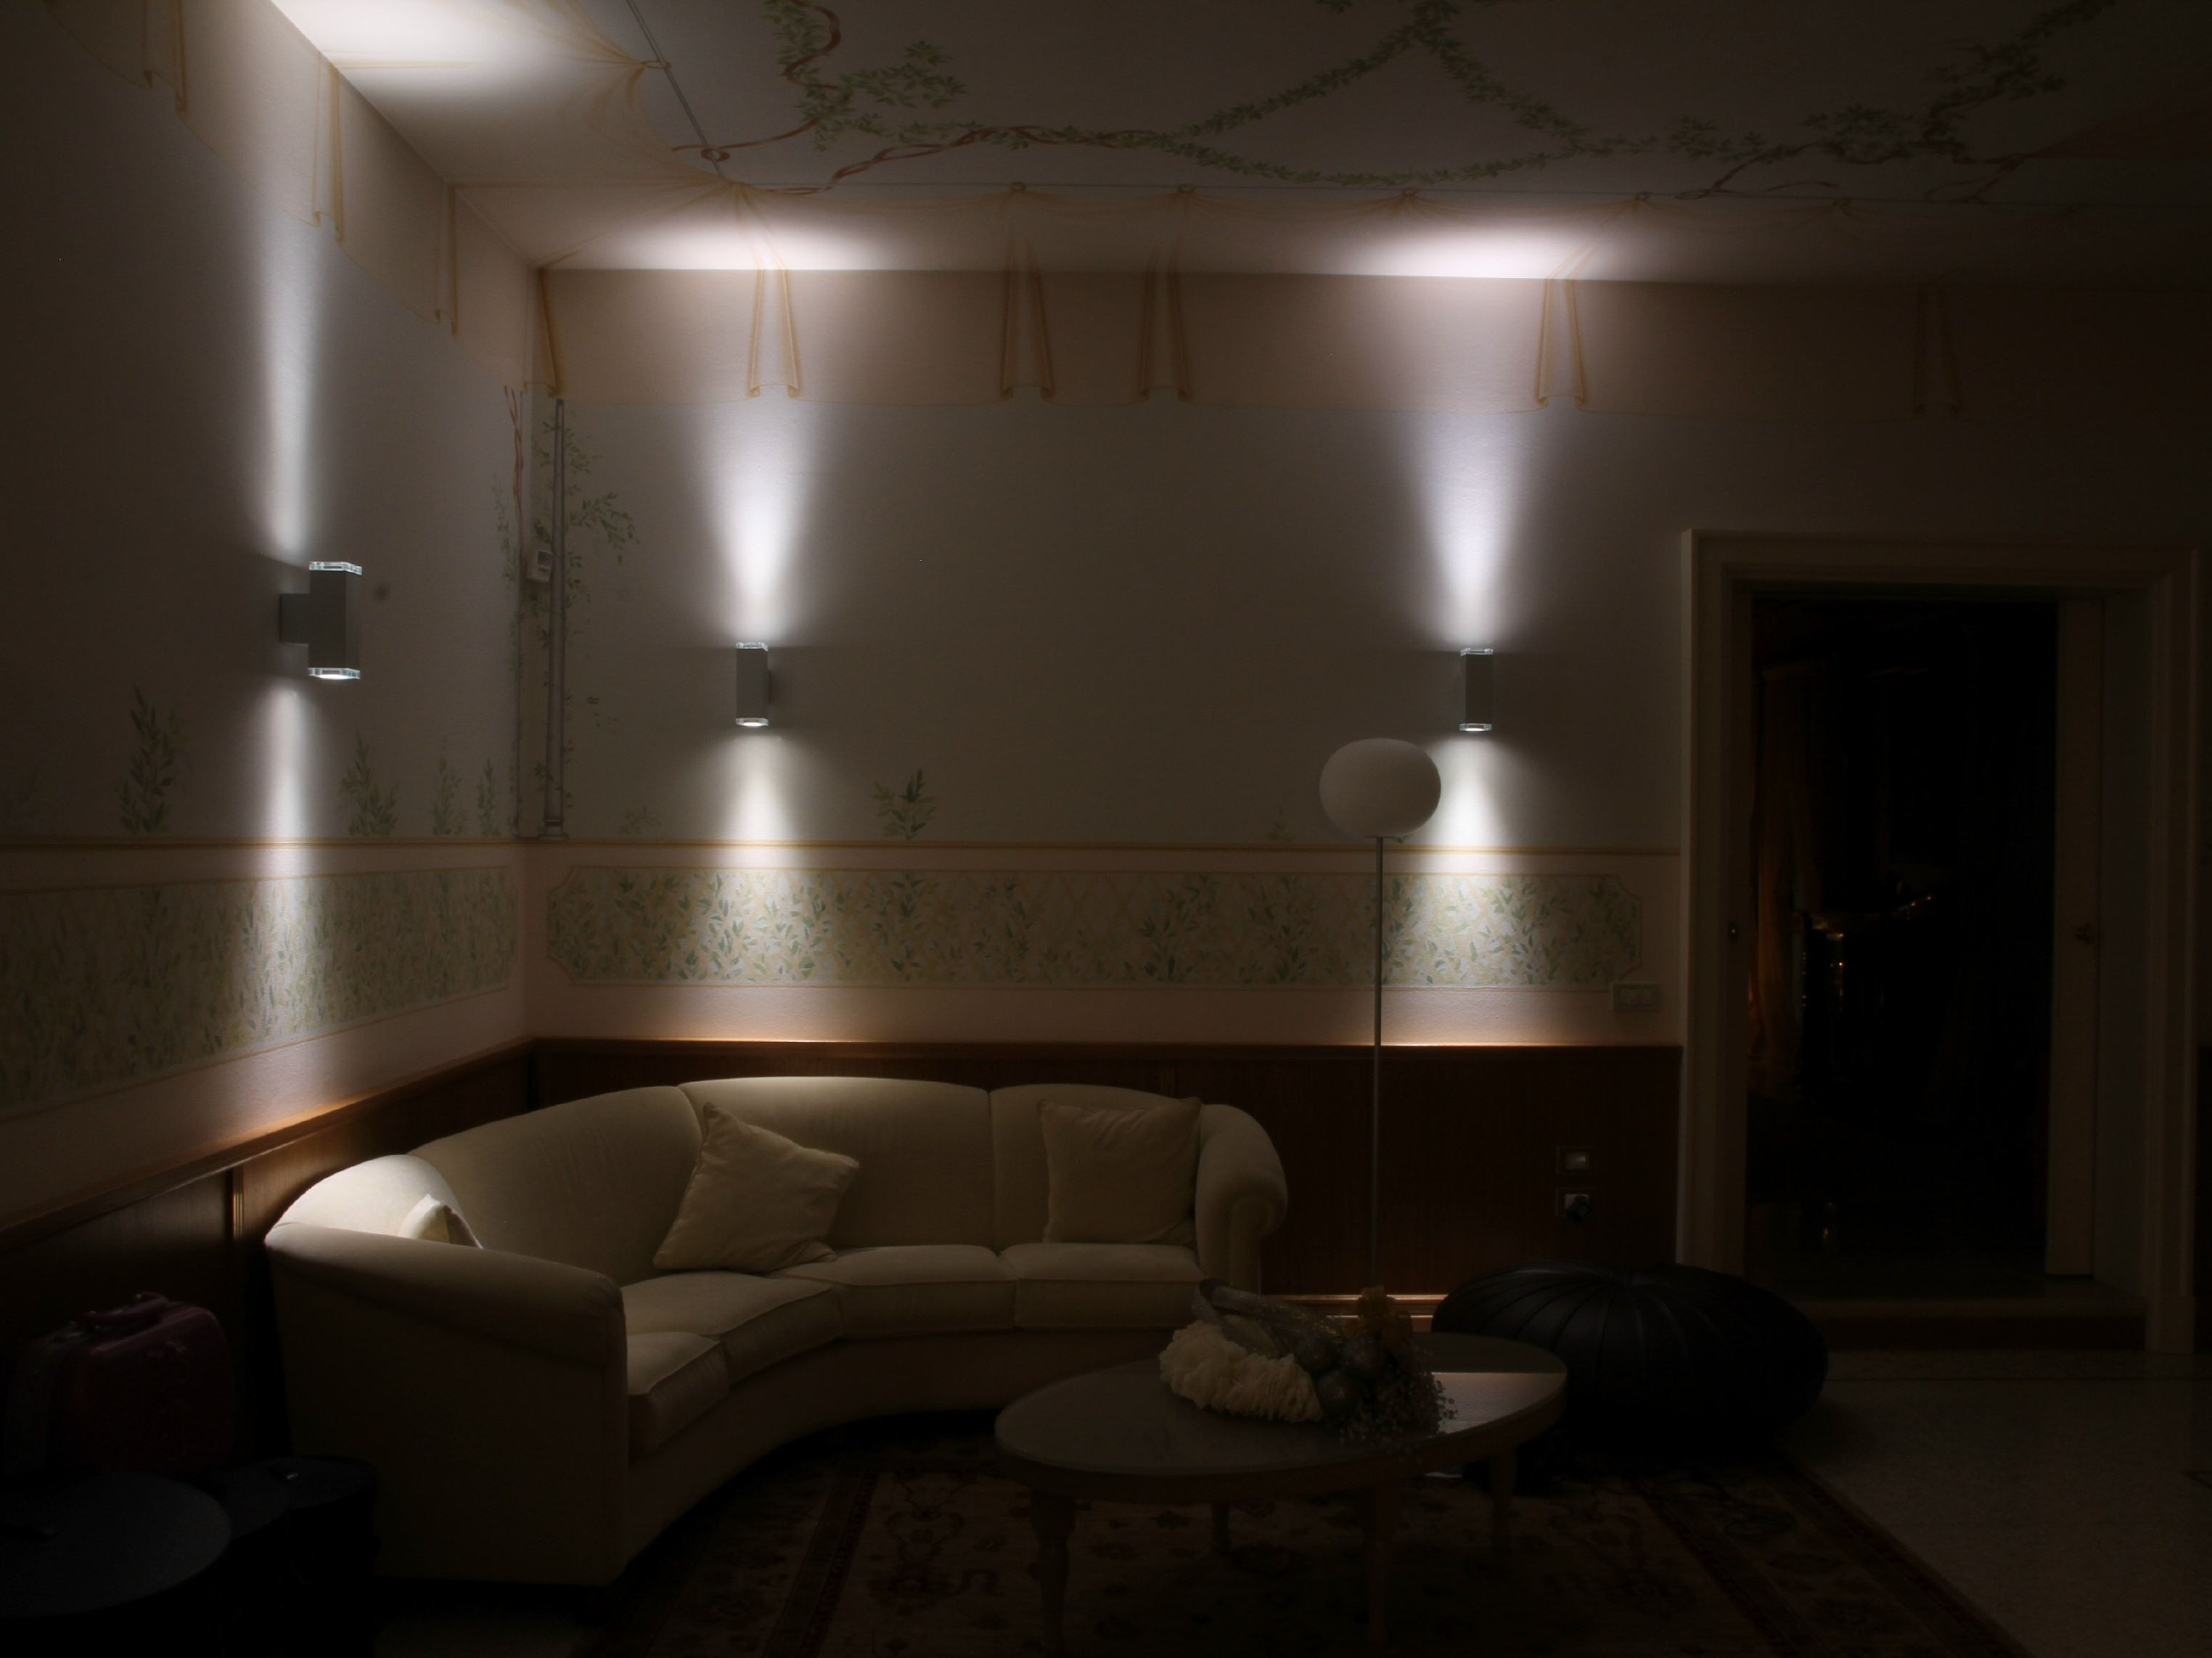 Wall Lamp Deco : WALL LAMP FOR PUBLIC AREAS TETRA DECO 140 TETRA COLLECTION BY PLATEK LIGHT